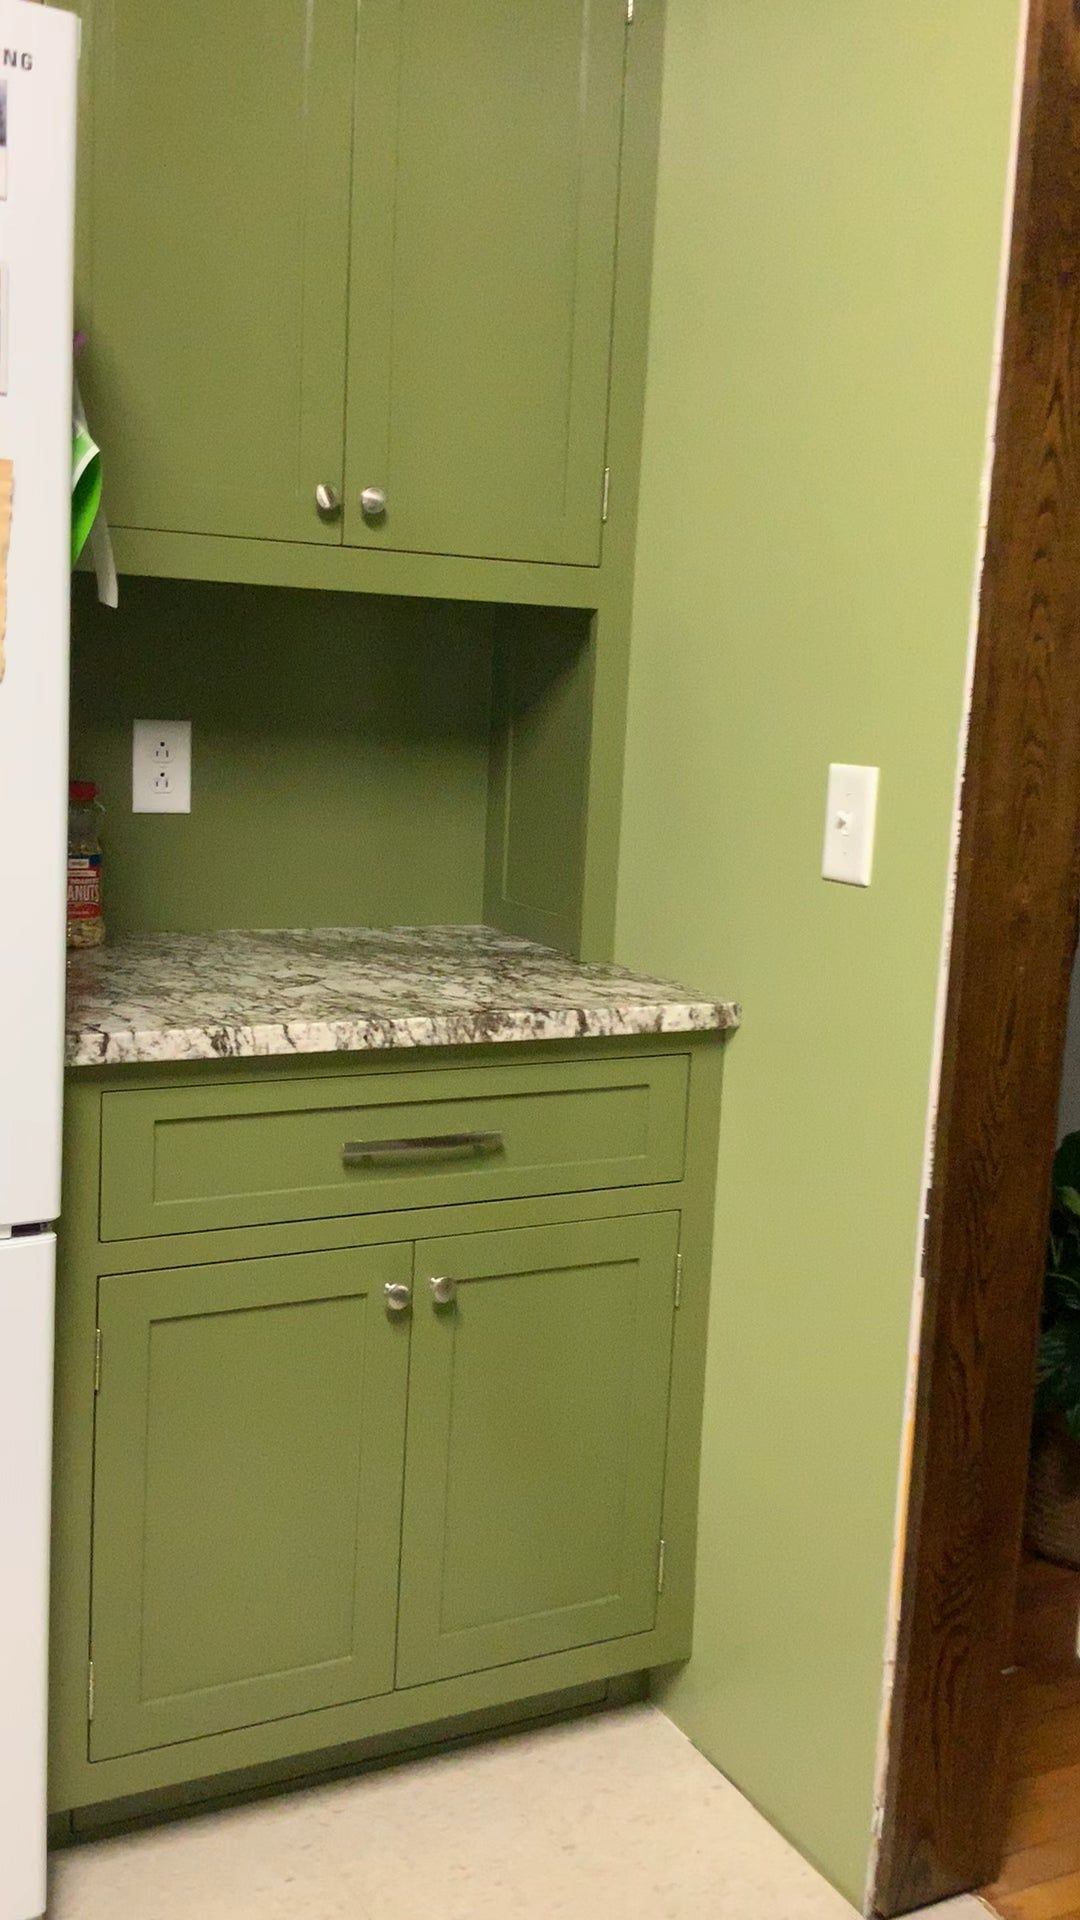 Kitchen Hiding Spot Took Forever To Build Secretcompartments